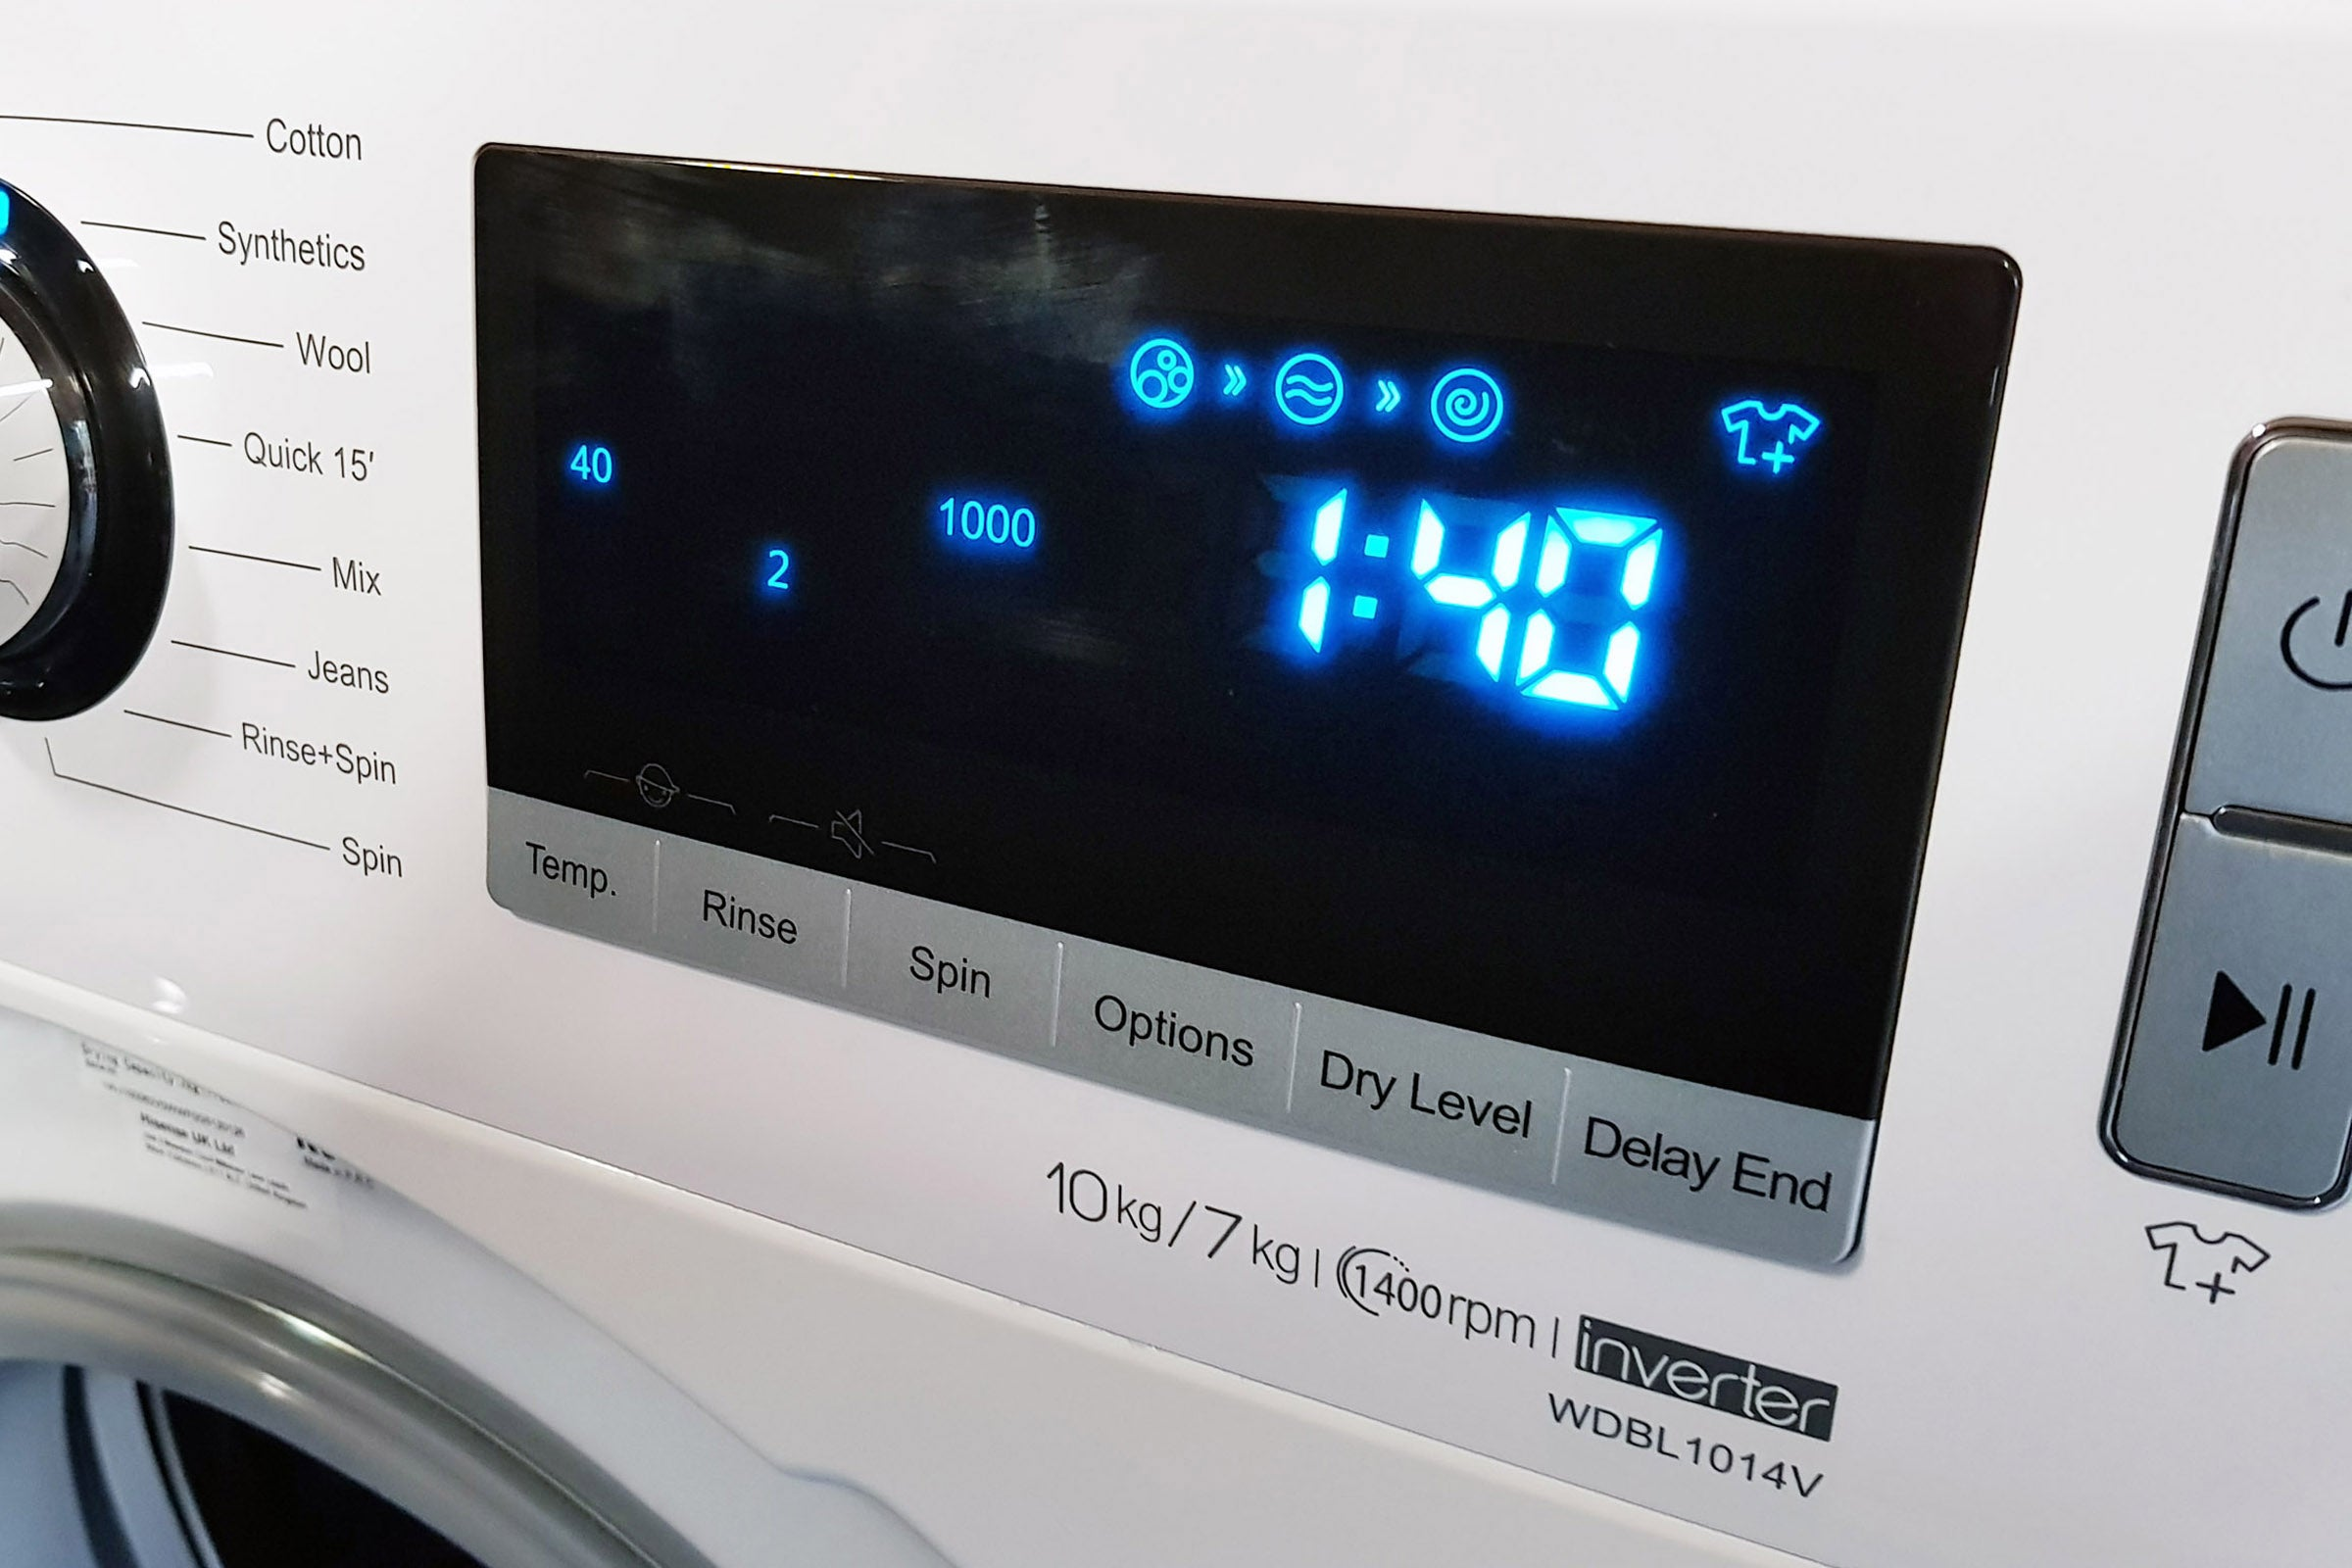 Hisense WDBL1014V Washer Dryer Review | Trusted Reviews